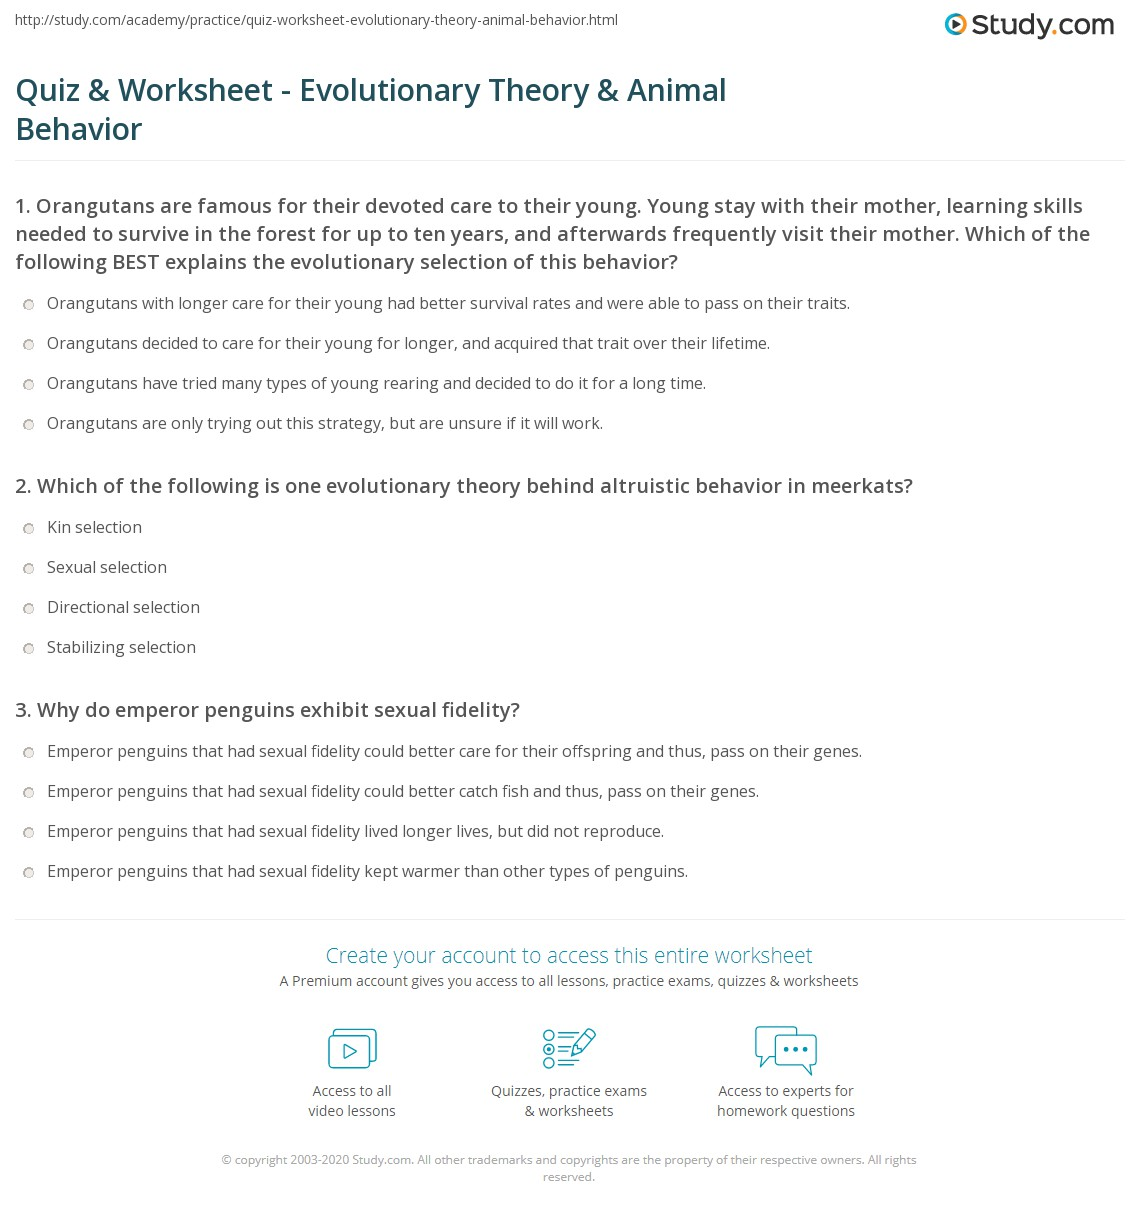 quiz worksheet evolutionary theory animal behavior. Black Bedroom Furniture Sets. Home Design Ideas